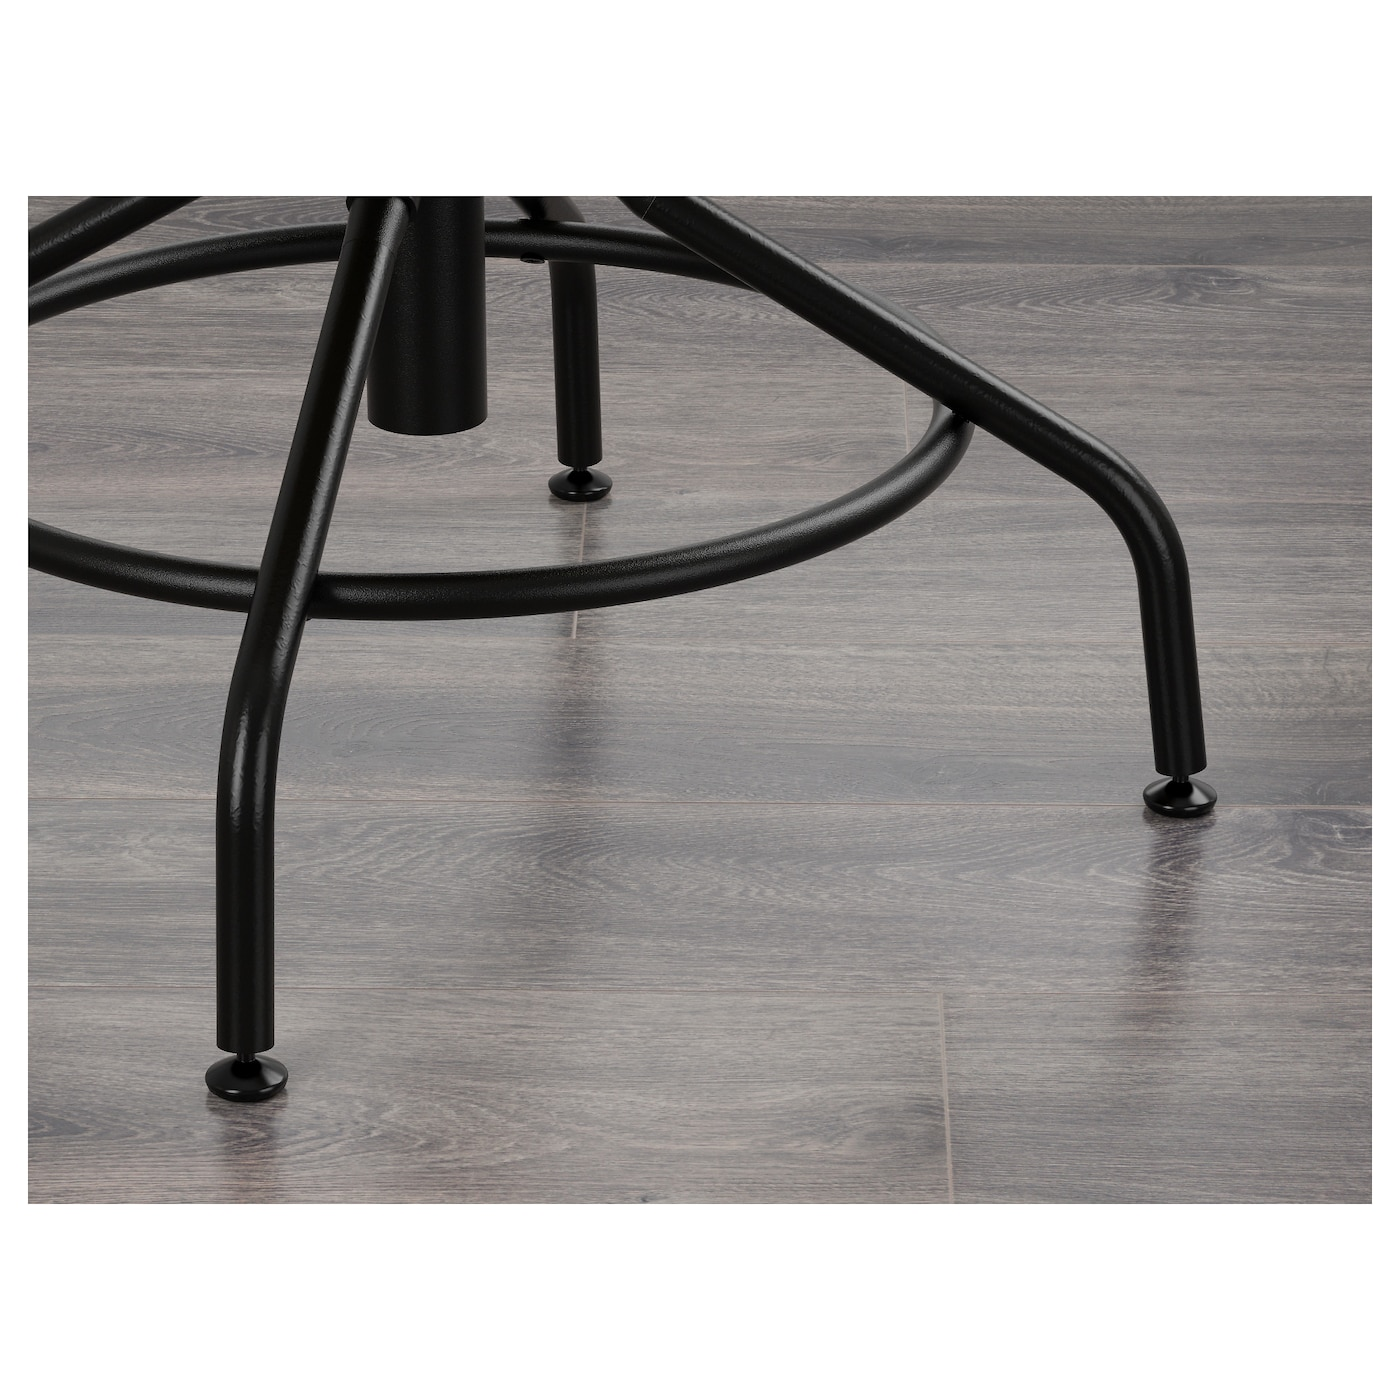 IKEA KULLABERG swivel chair The metal ring underneath can be used as a footrest.